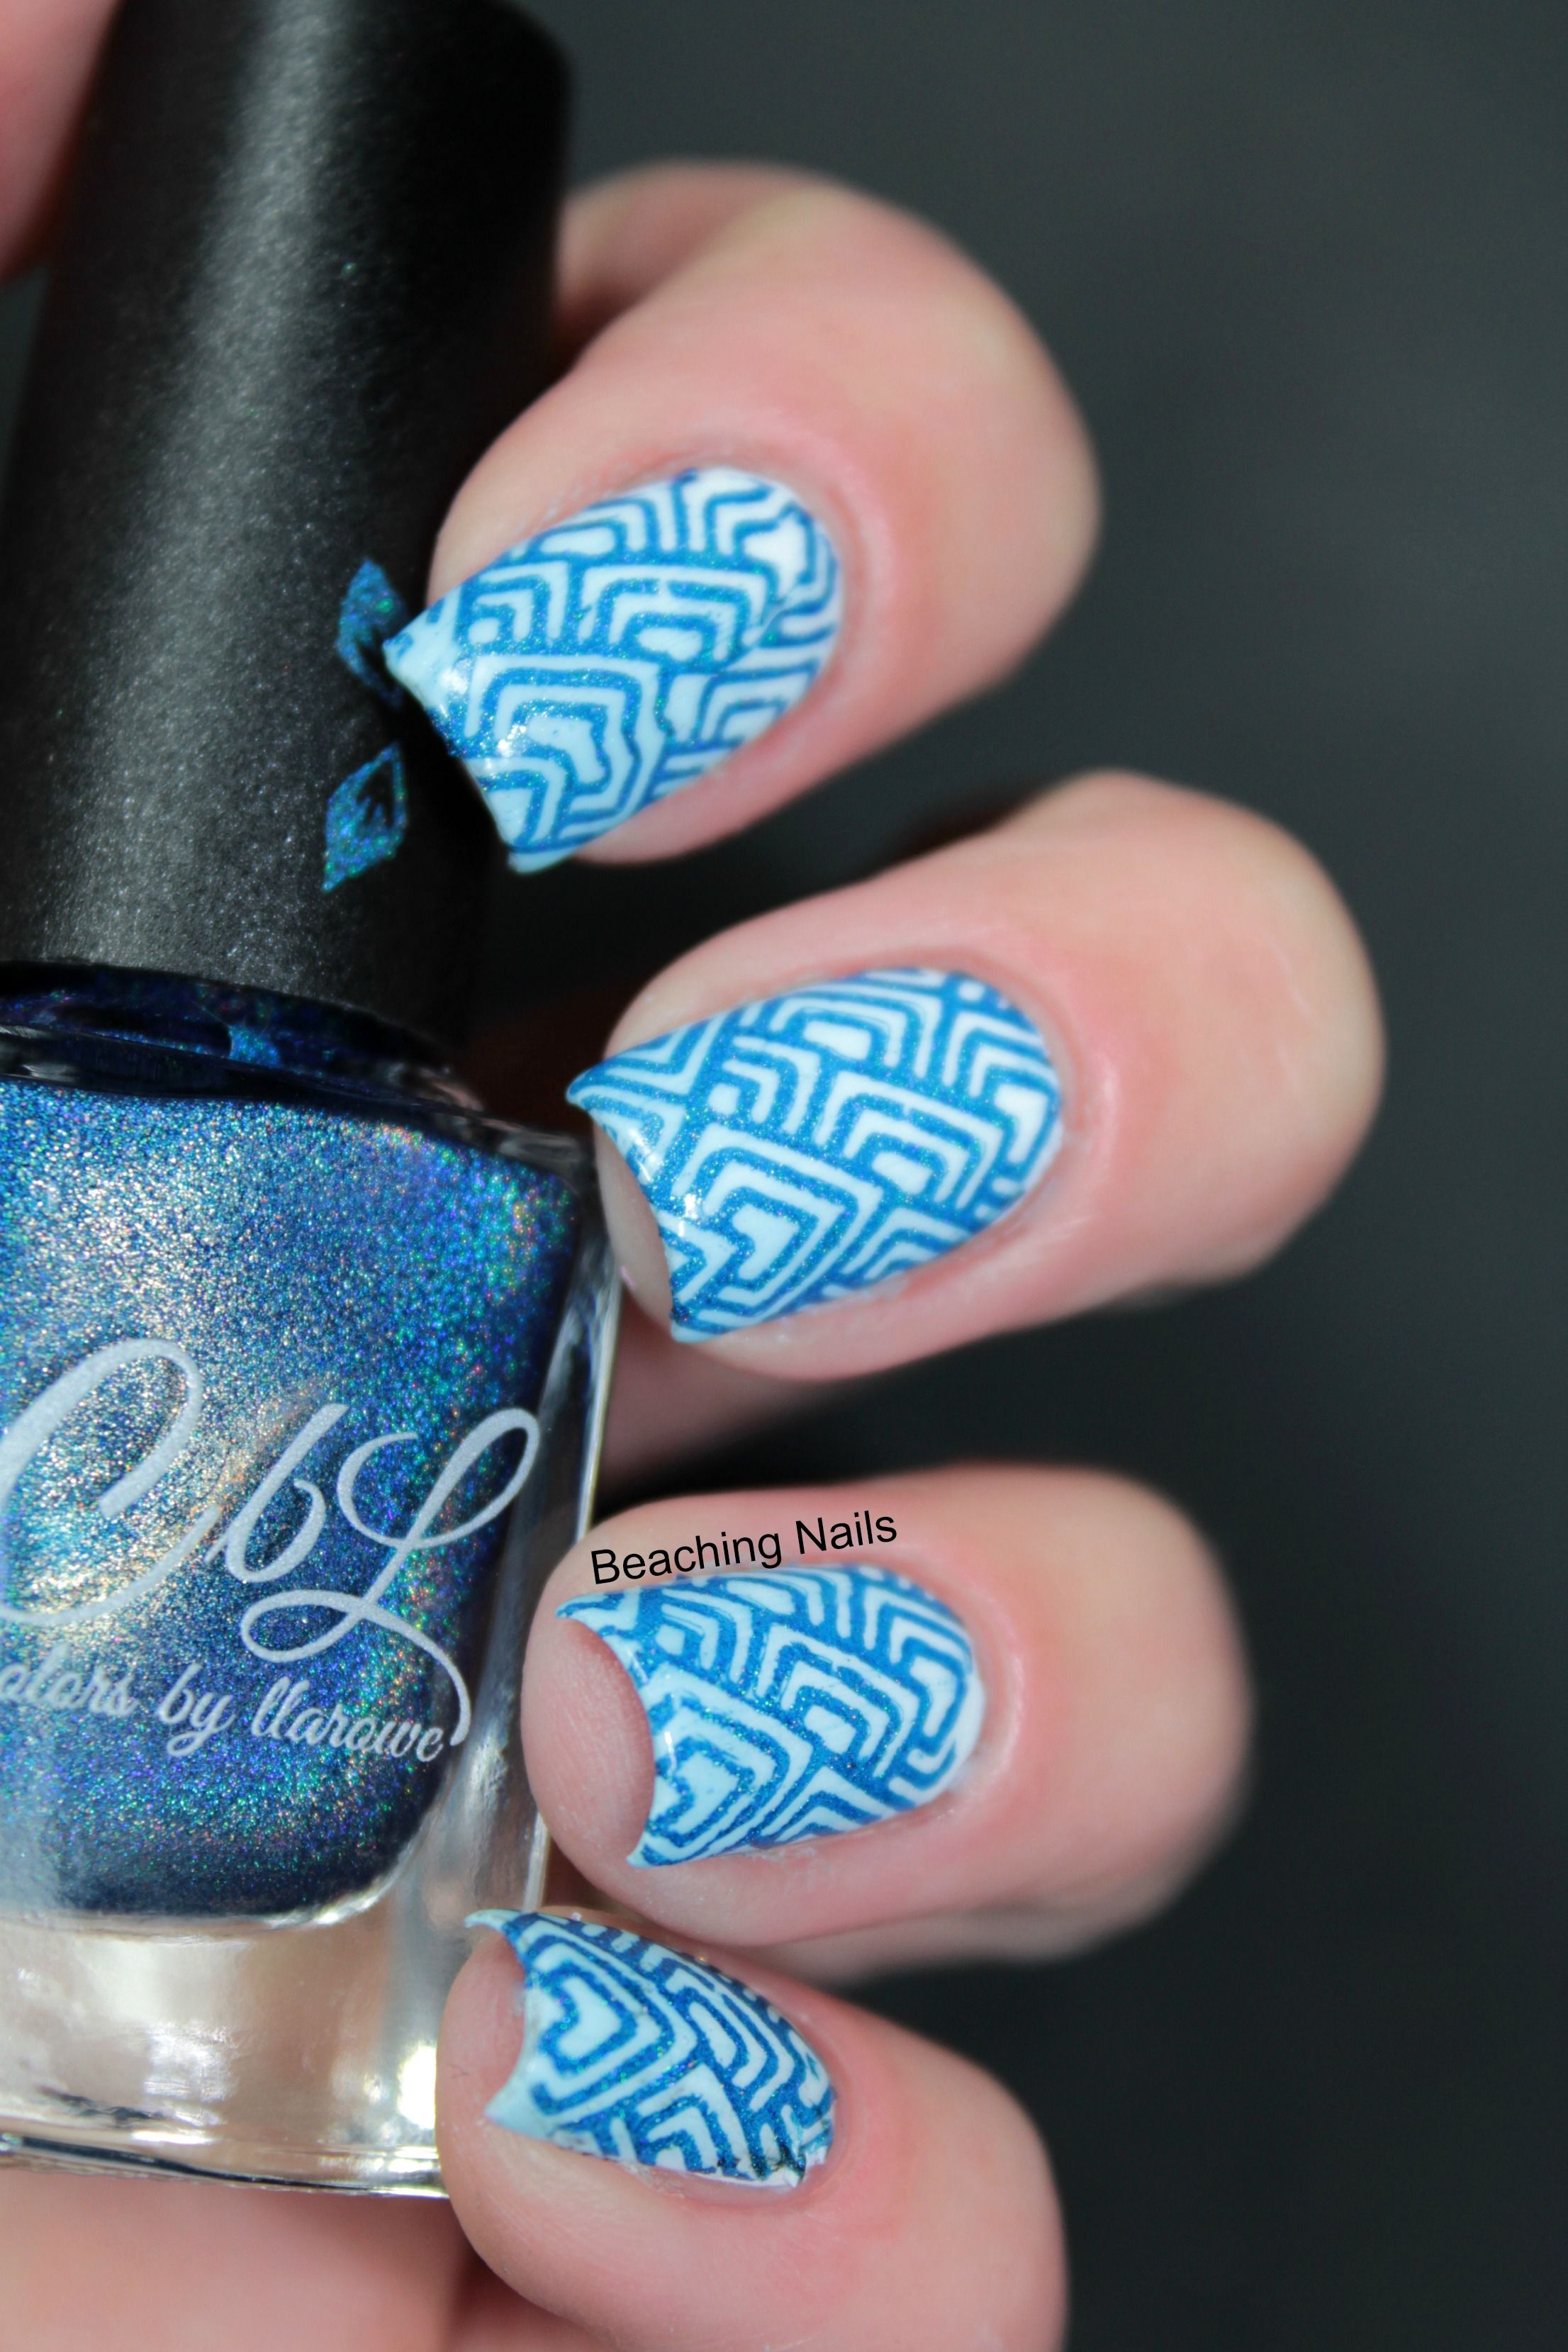 Colors by llarowe Stamping Polish - Royalty stamped over white by @beachingnails. Click on the pic to take you to the website's product listings.